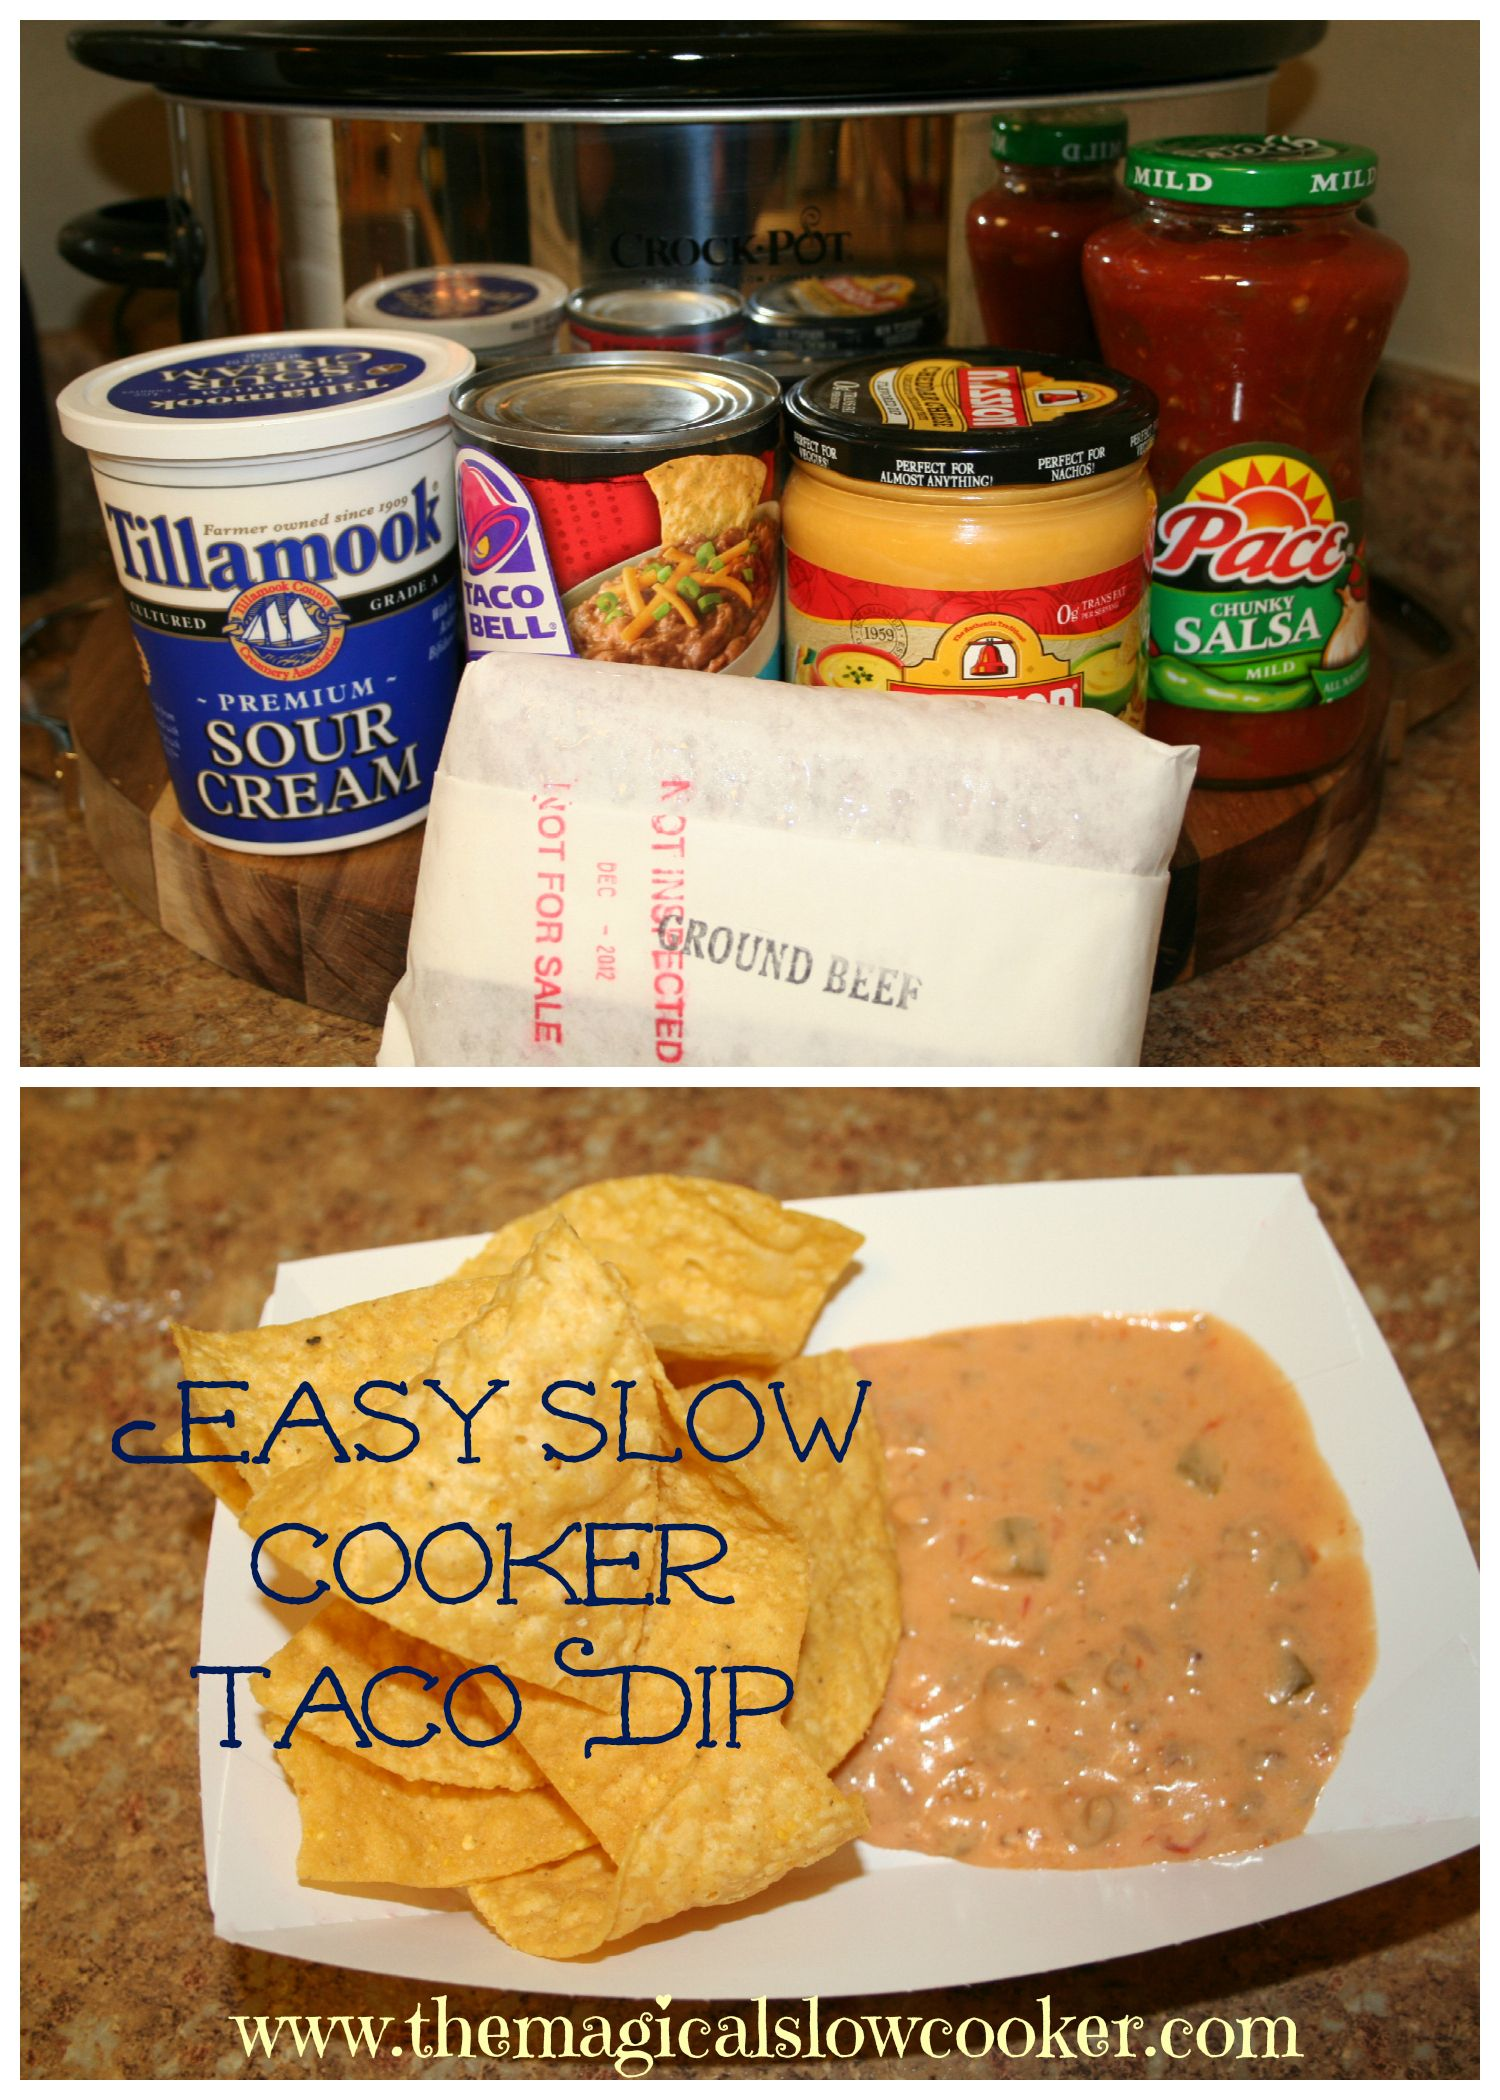 Slow Cooker Taco Dip The Magical Slow Cooker Recipe Slow Cooker Tacos Food Yummy Appetizers